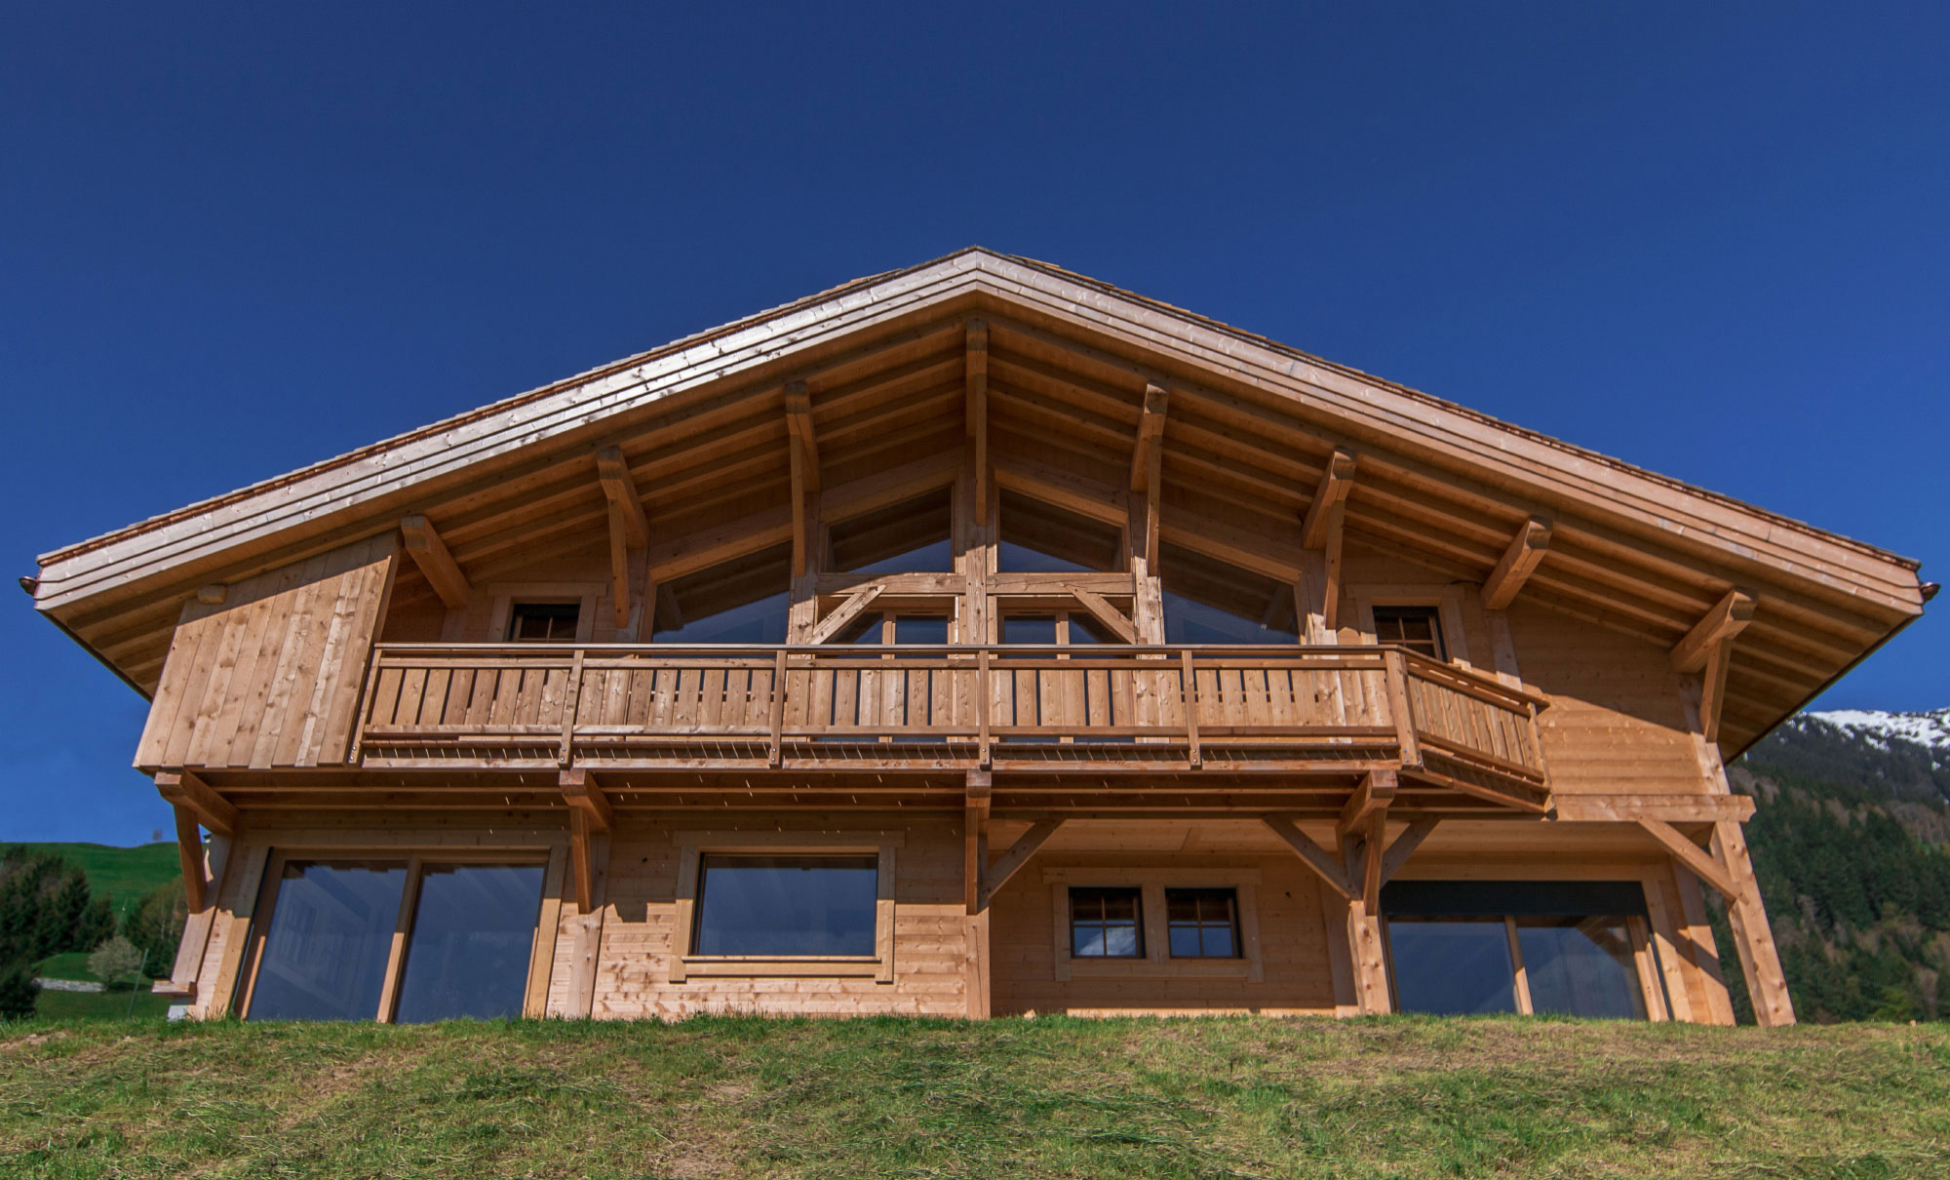 Location de chalet en Beaufortain. Le chalet Frison